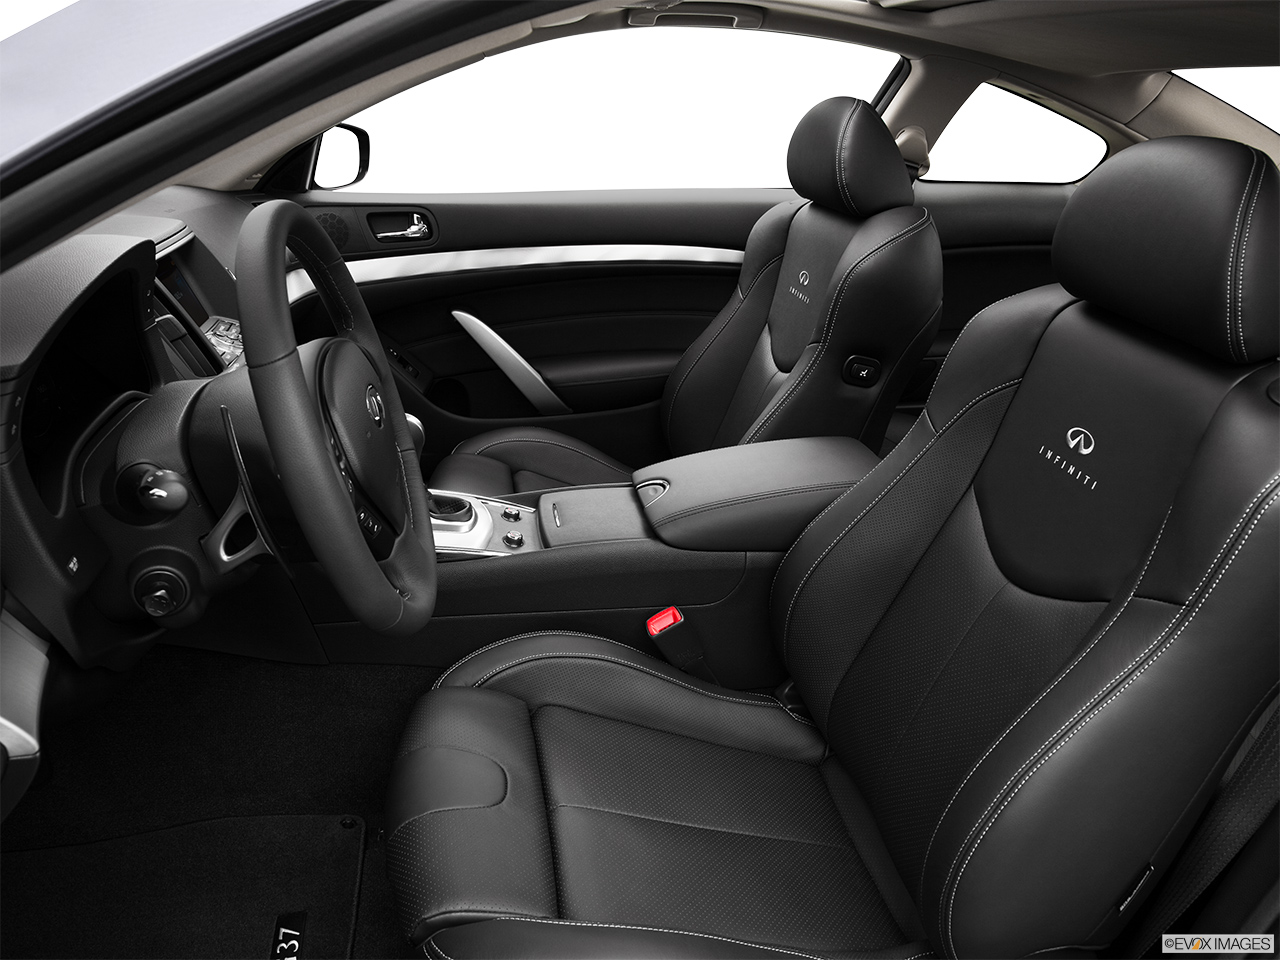 2013 Infiniti G37 Coupe 2 Door Journey RWD   Front Seats From Drivers Side